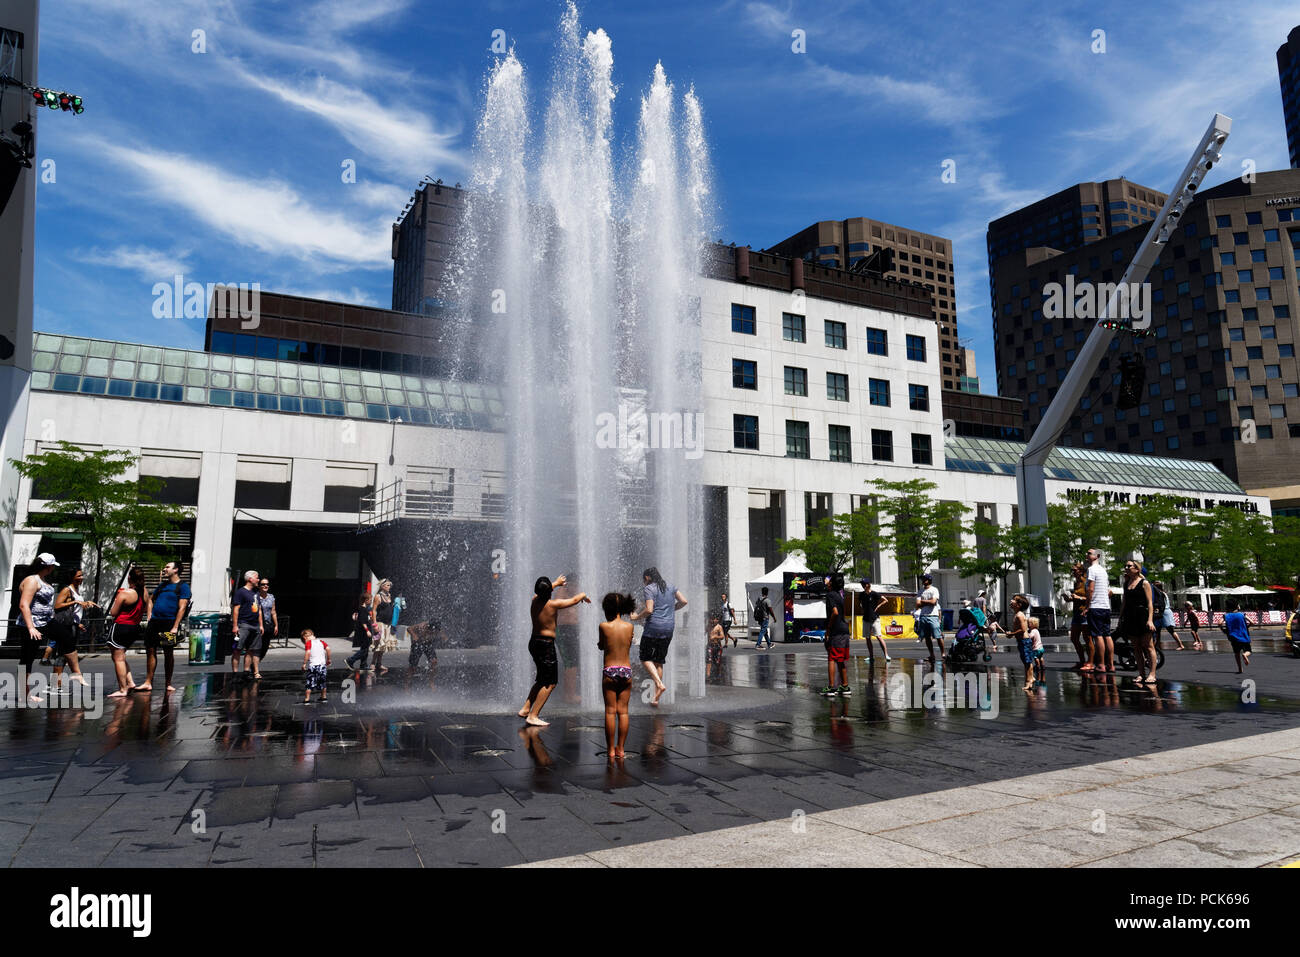 Children cooling off playing in water fountains in on Rue Jeanne Mance in Montreals Entertainment District. Taken during the 2108 heatwave. - Stock Image